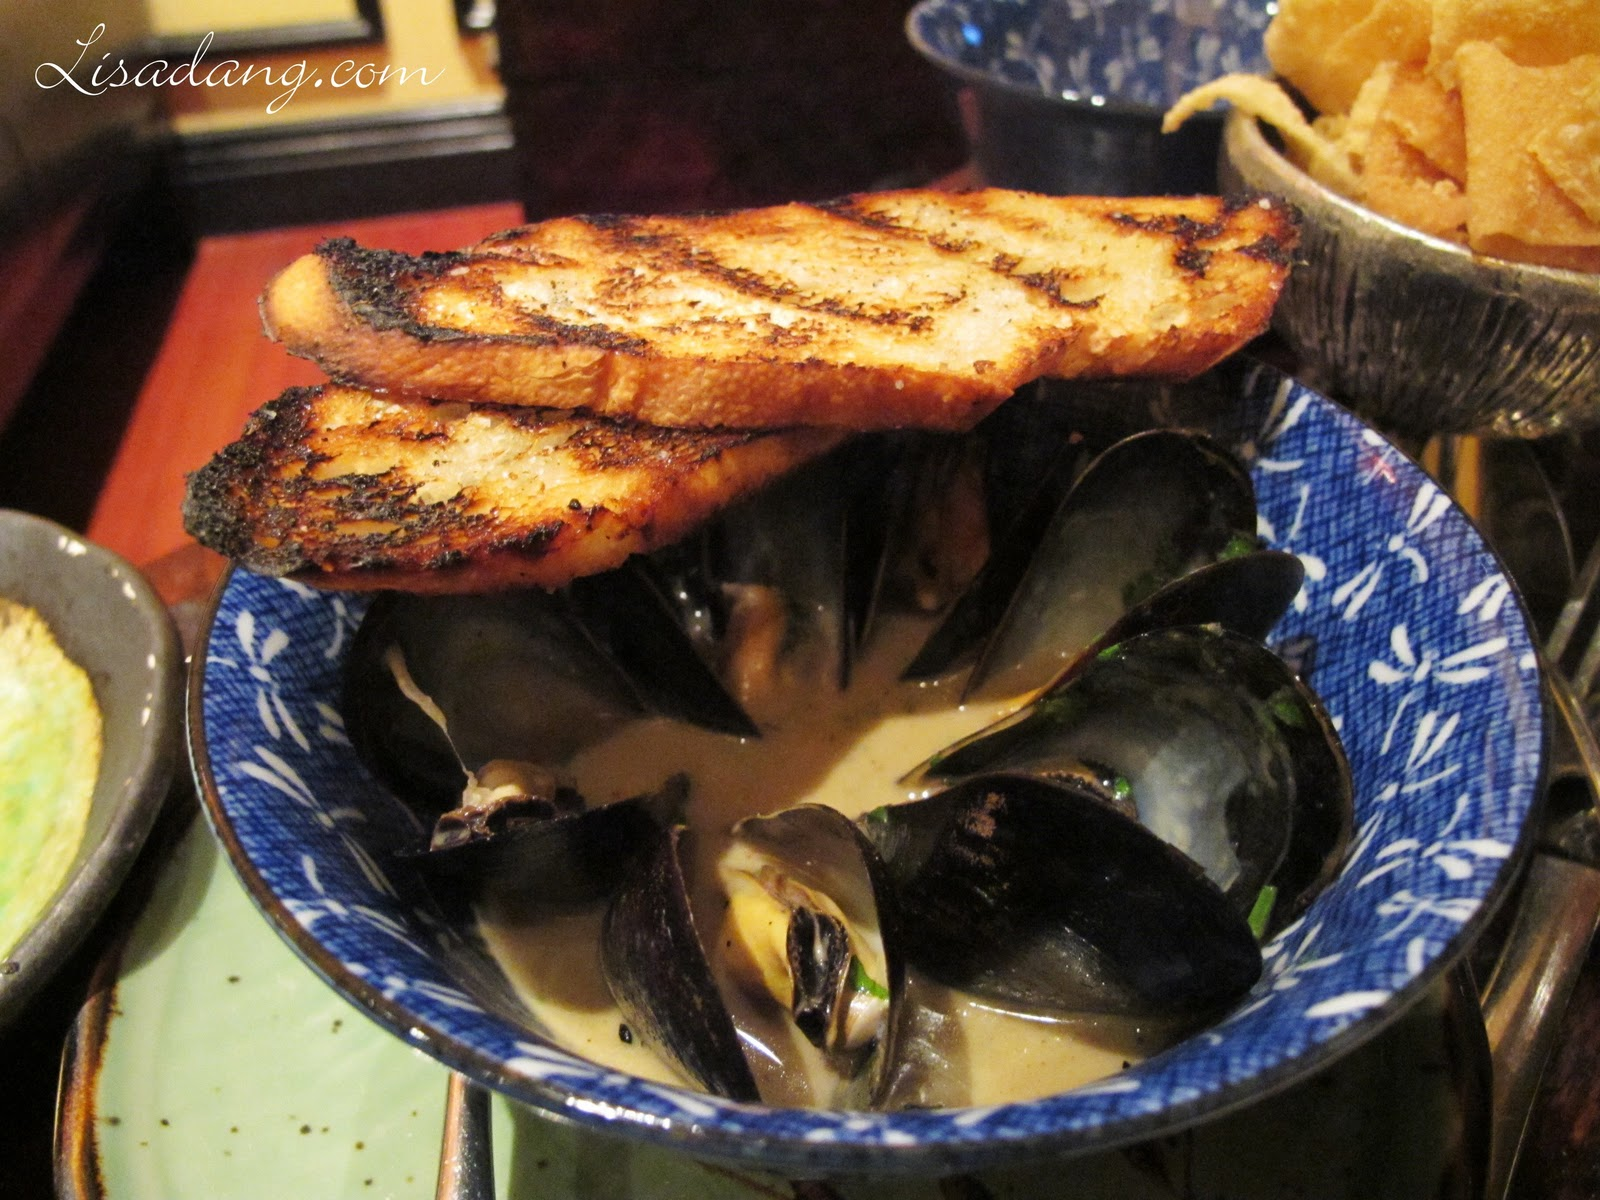 Thai Curry Mussels - Pei mussels, lemon grass chili broth, grilled ...